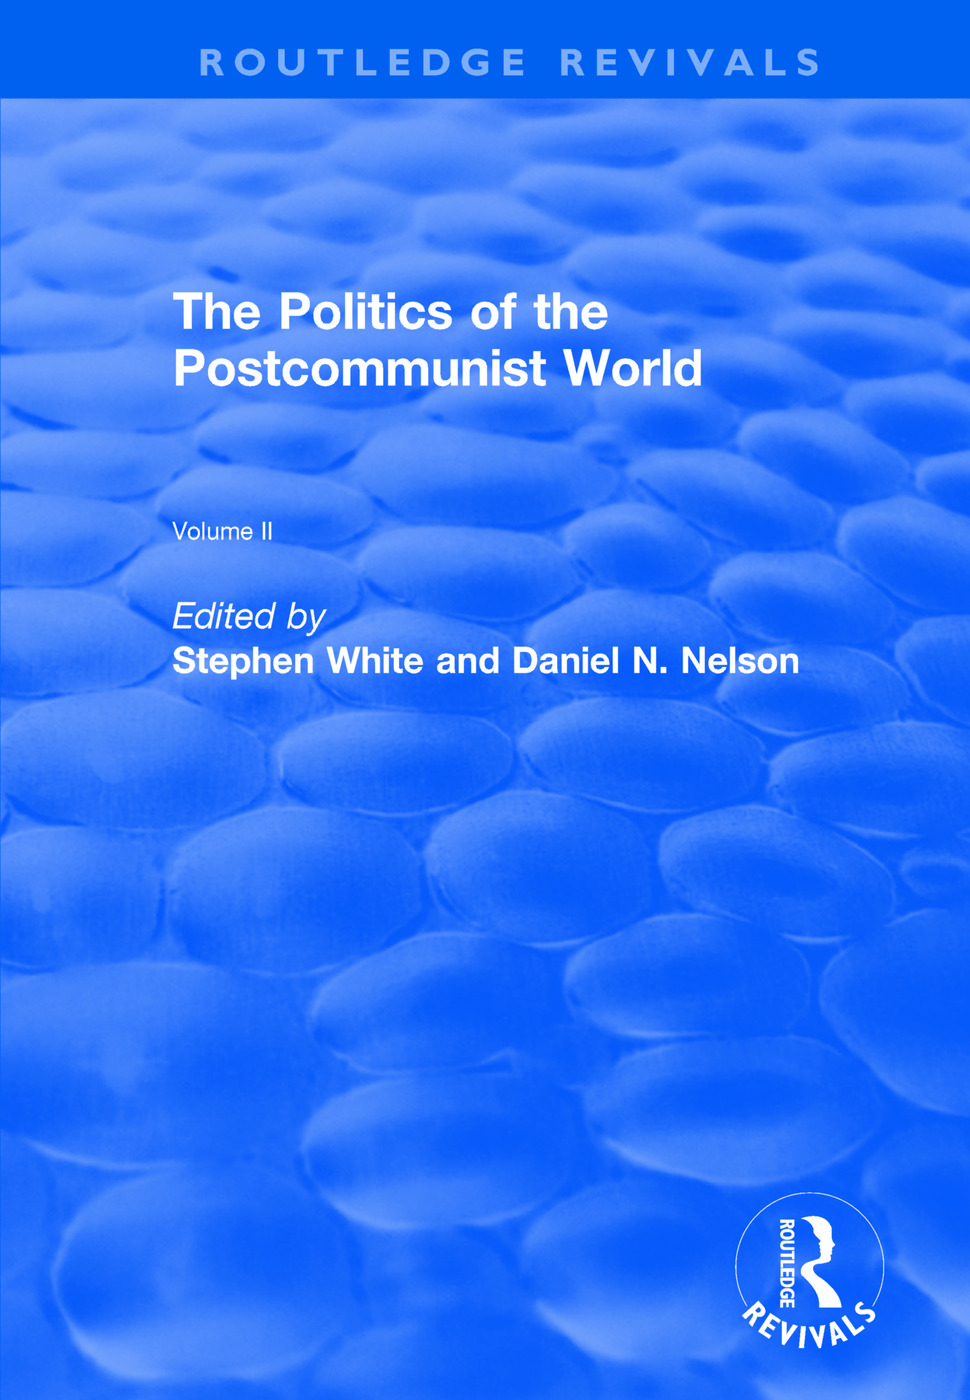 The Politics of the Postcommunist World